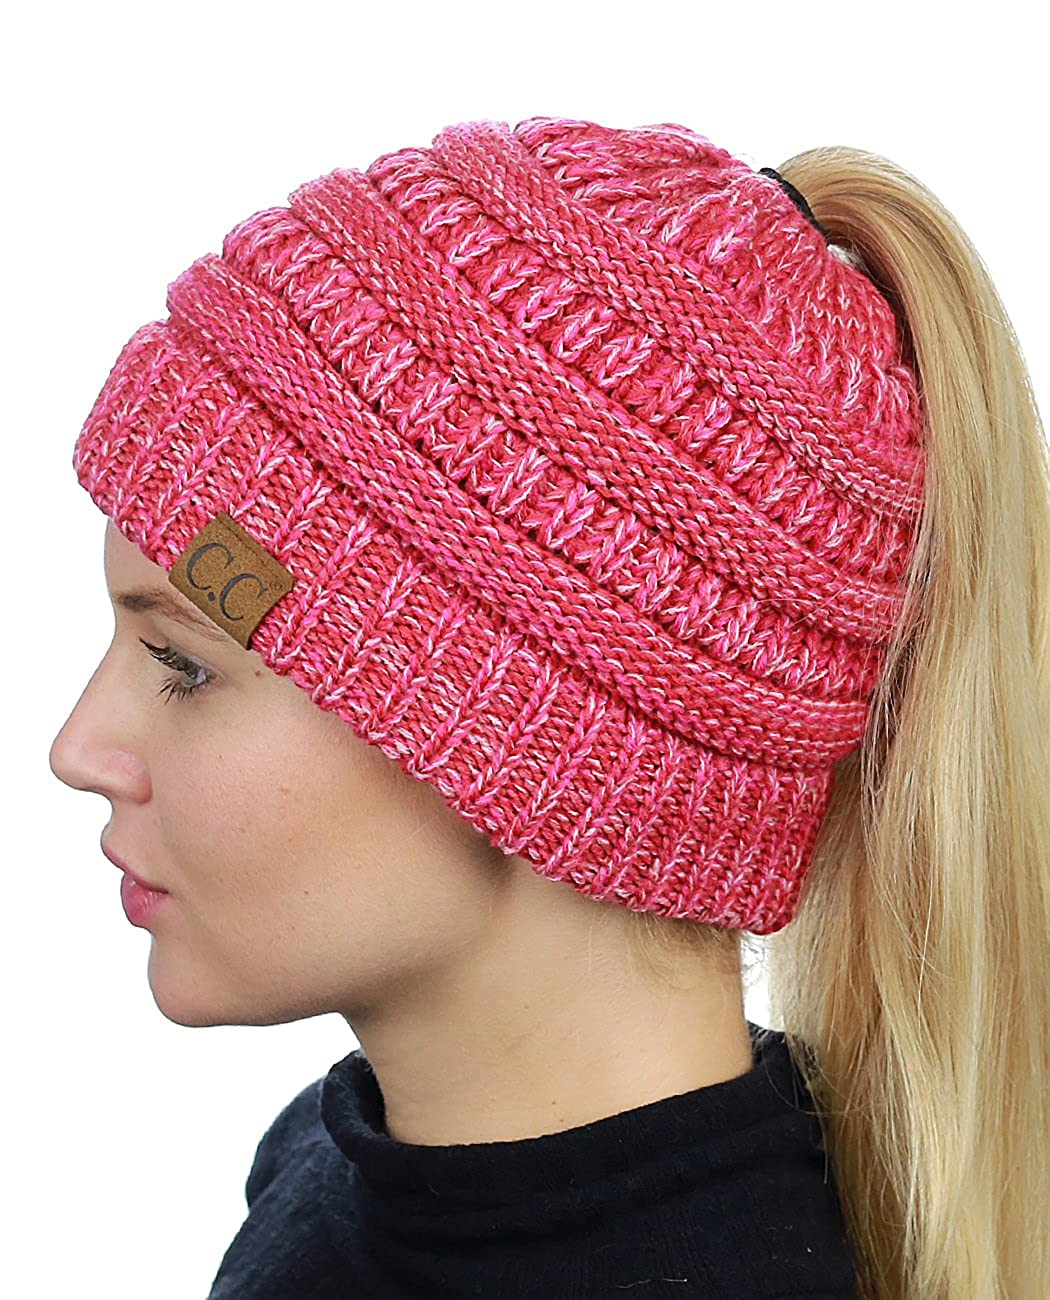 5876961fea1 C.C BeanieTail Soft Stretch Cable Knit Messy High Bun Ponytail Beanie Hat